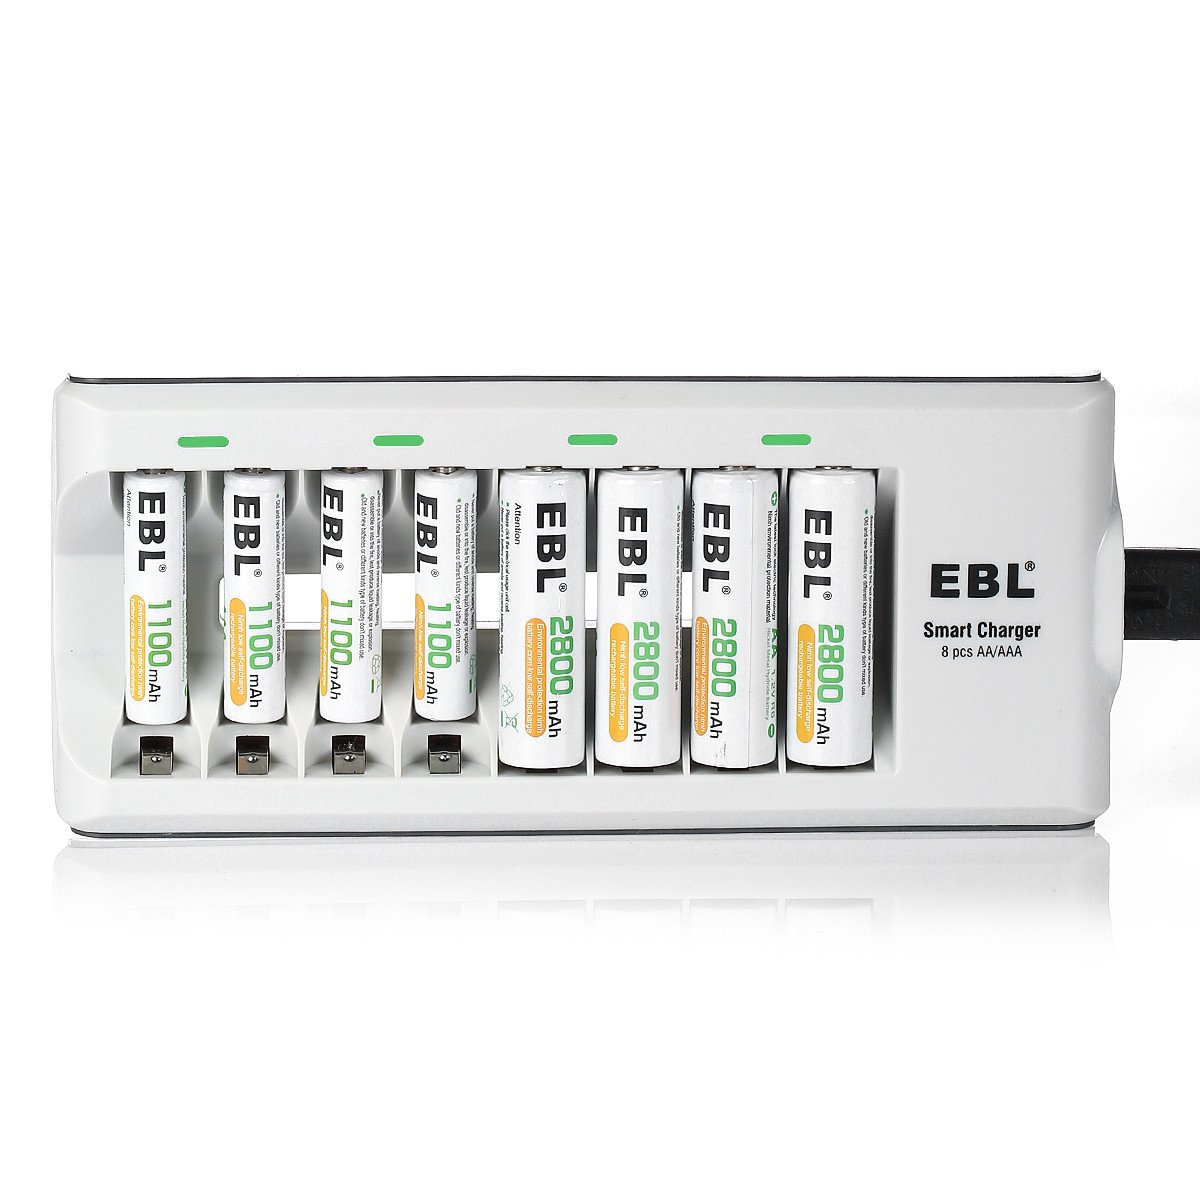 EBL Batteries with Charger, 808 AA AAA Battery Charger with 2800mAh AA Rechargeable Batteries (4 Pack) and 1100mAh AAA Rechargeable Batteries (4 Pack)